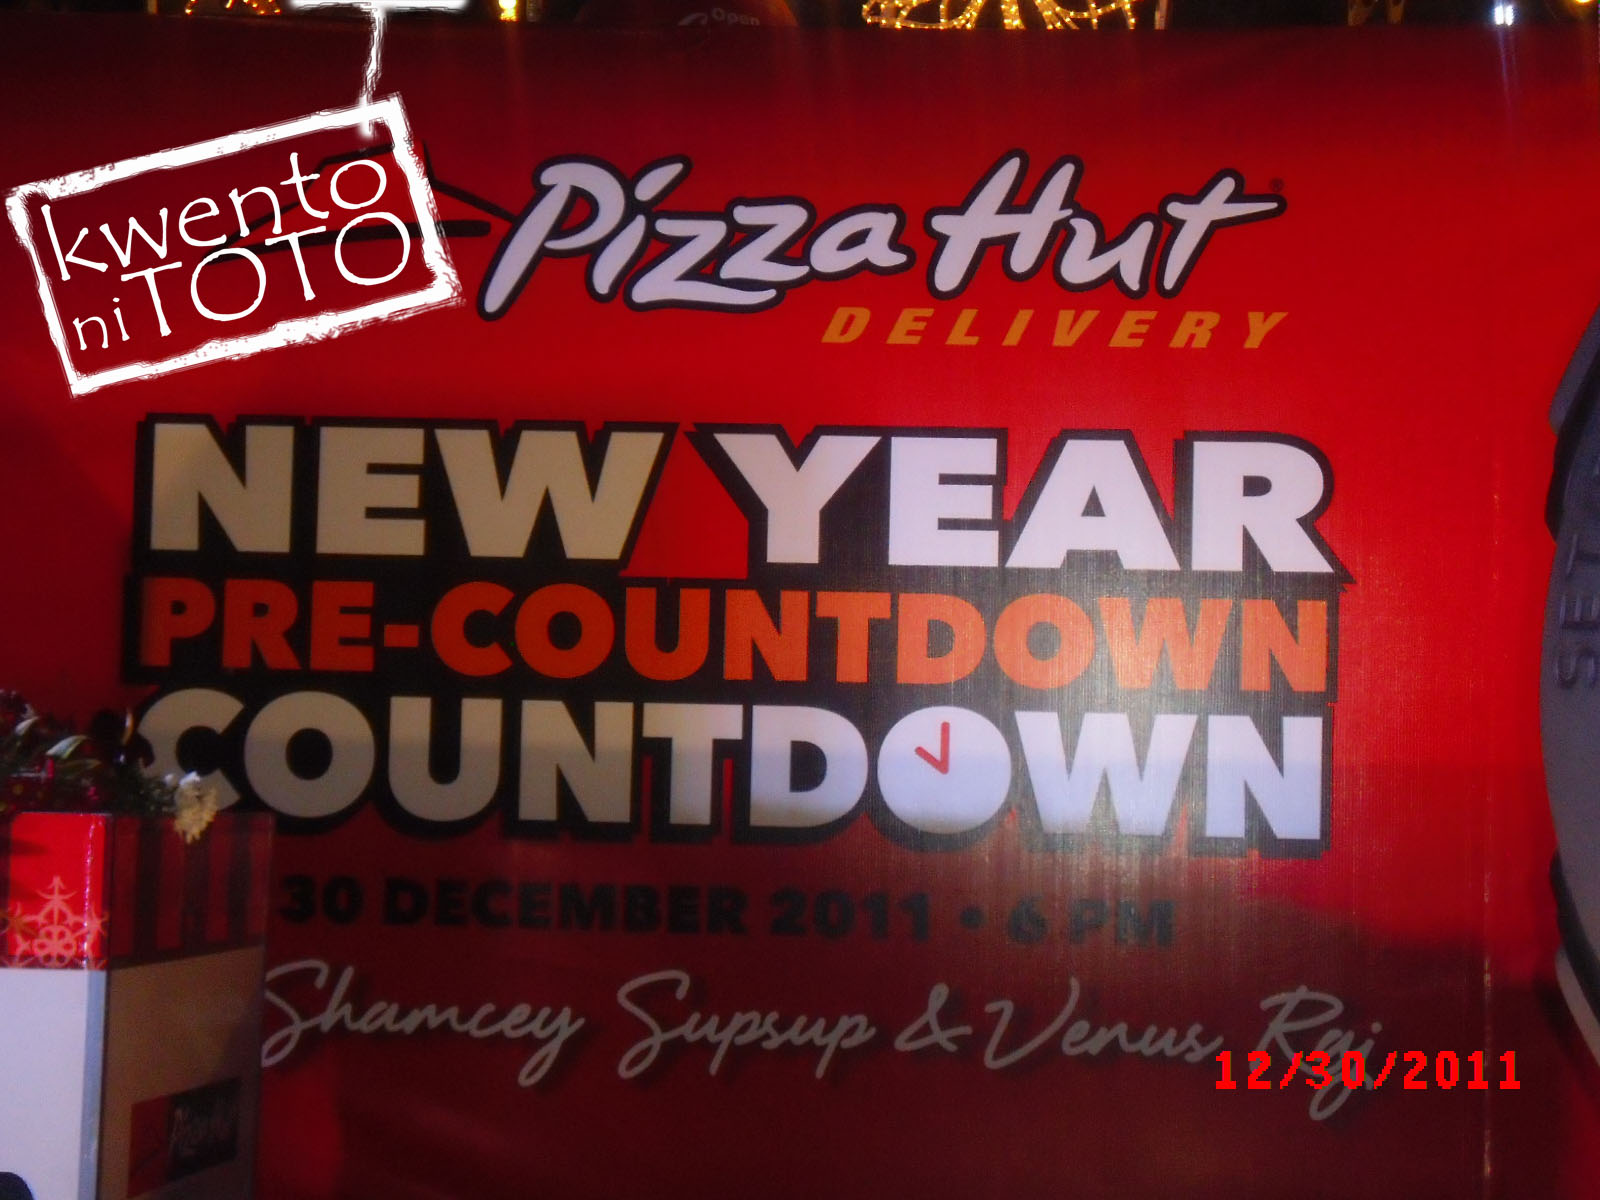 this was the main objective of the recent pre new year countdown